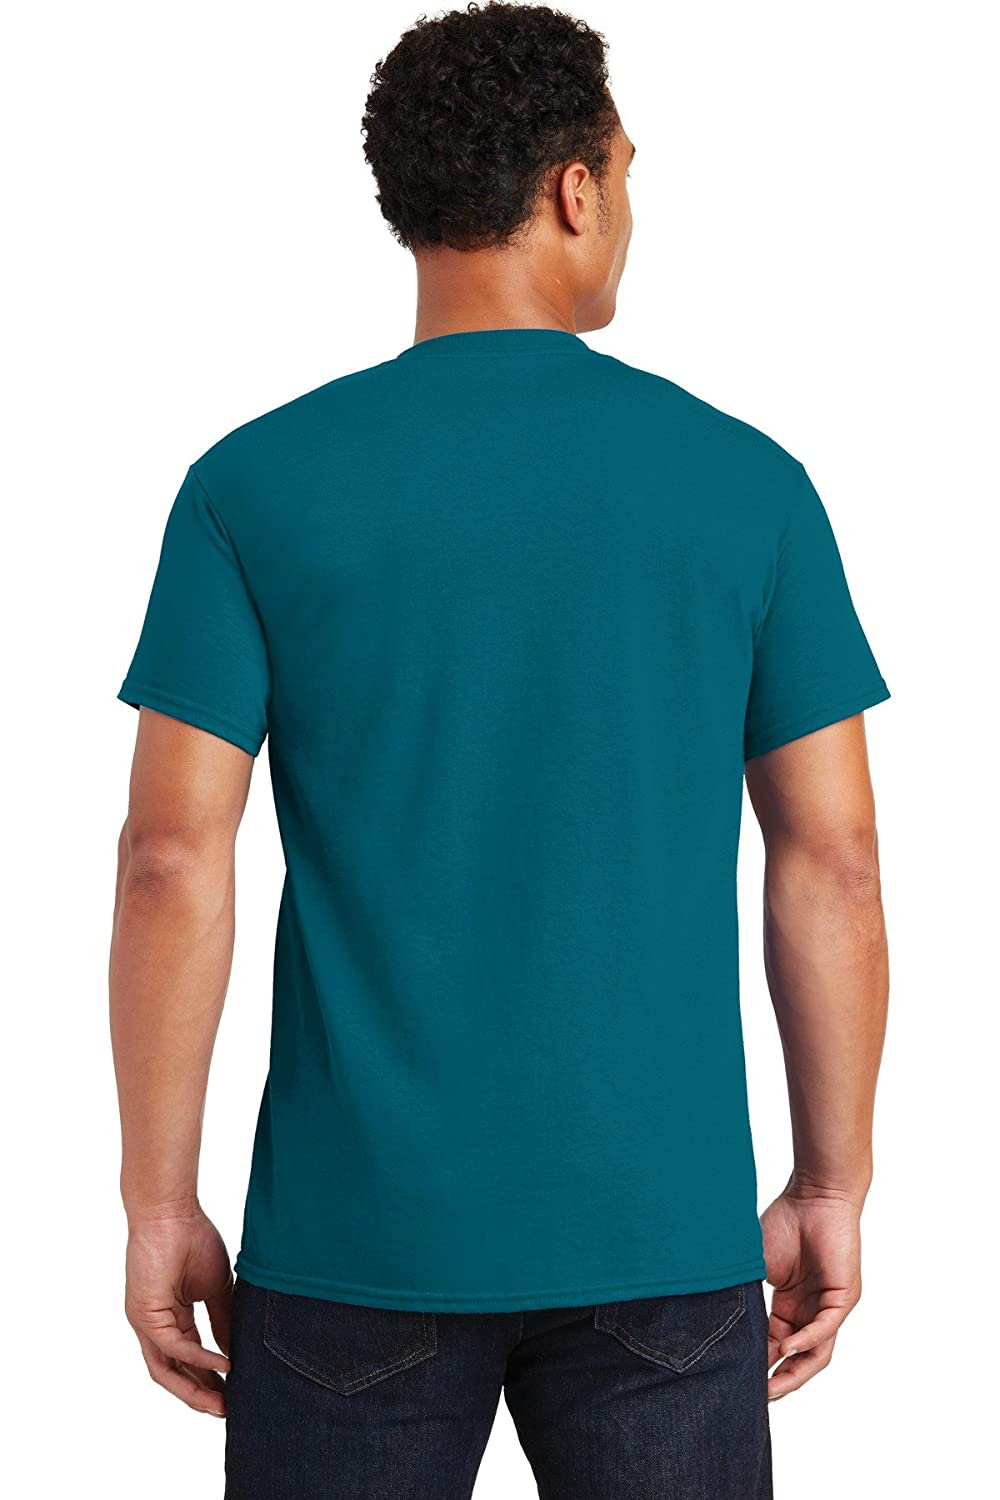 Cotton 6 oz G200 T-Shirt